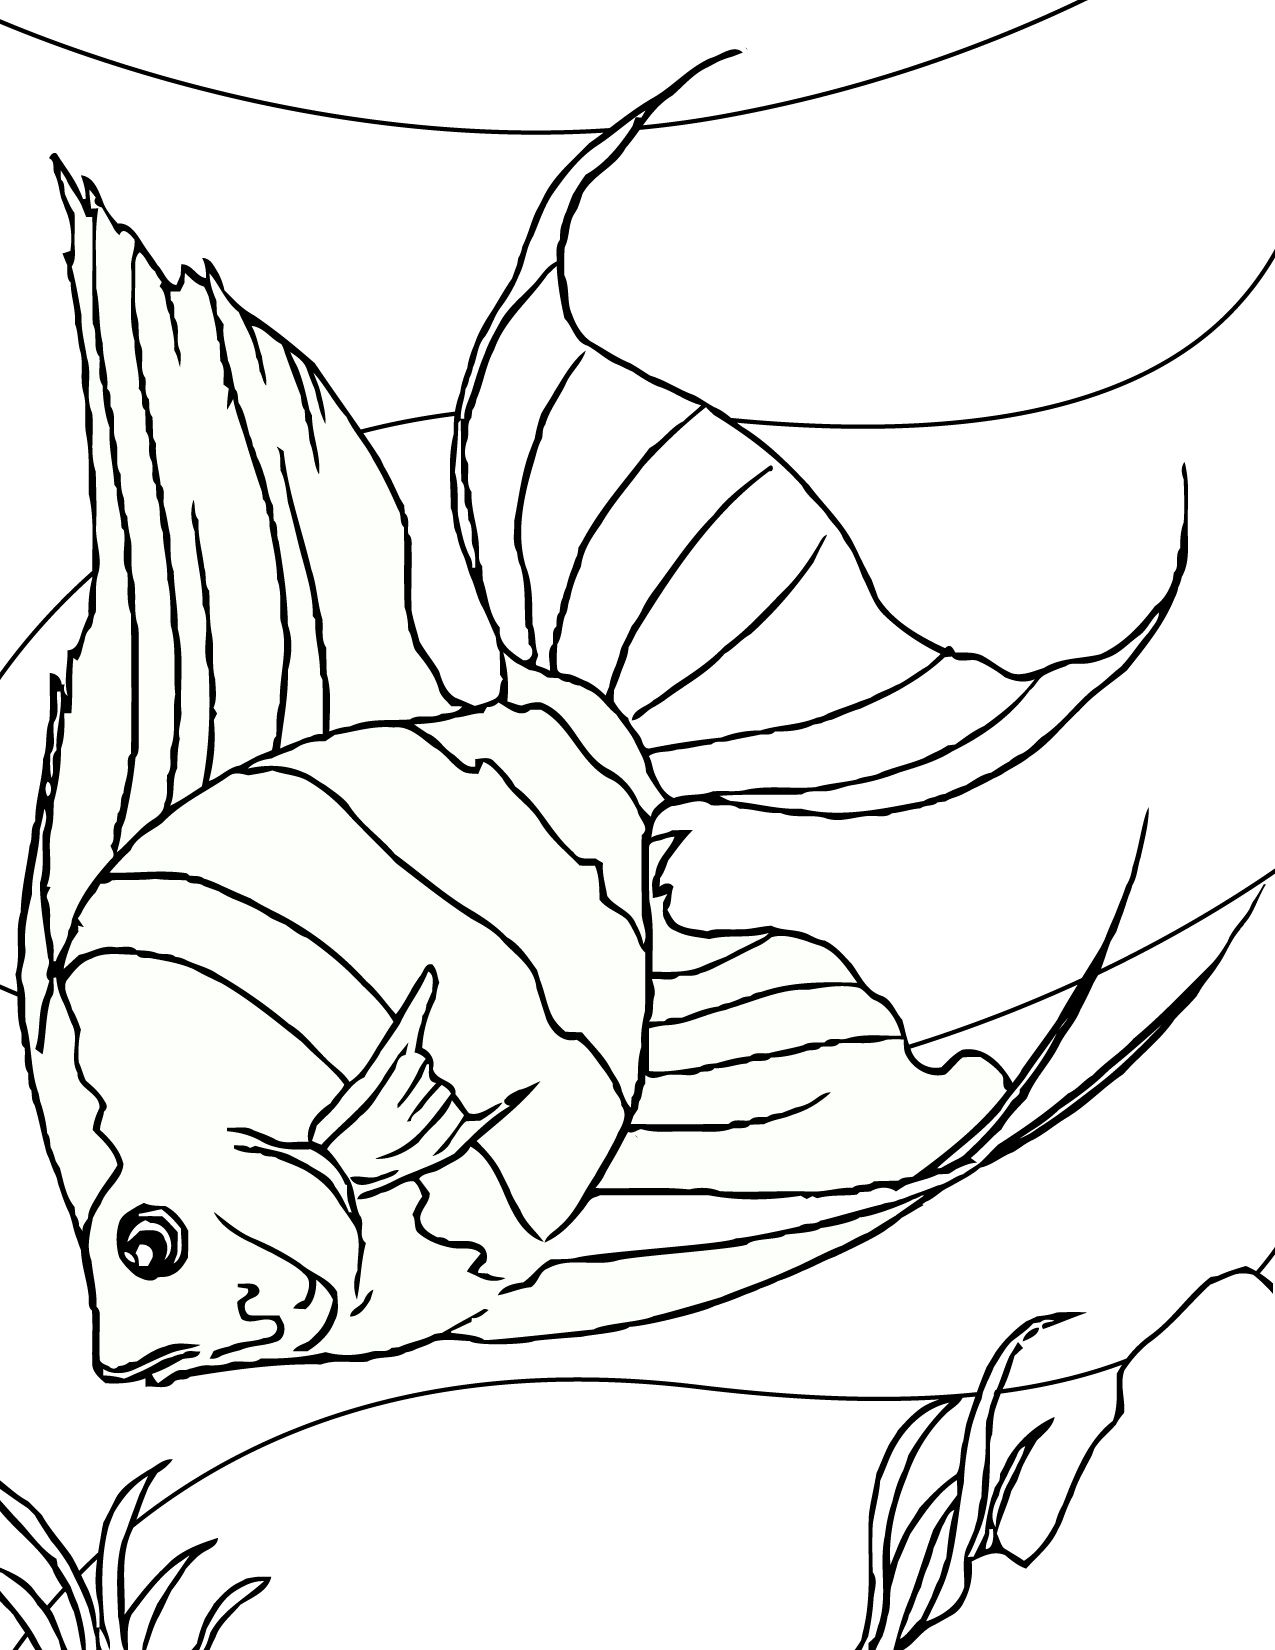 Free Printable Fish Coloring Pages For Kids Fish Coloring Page Fish Printables Rainbow Fish Coloring Page